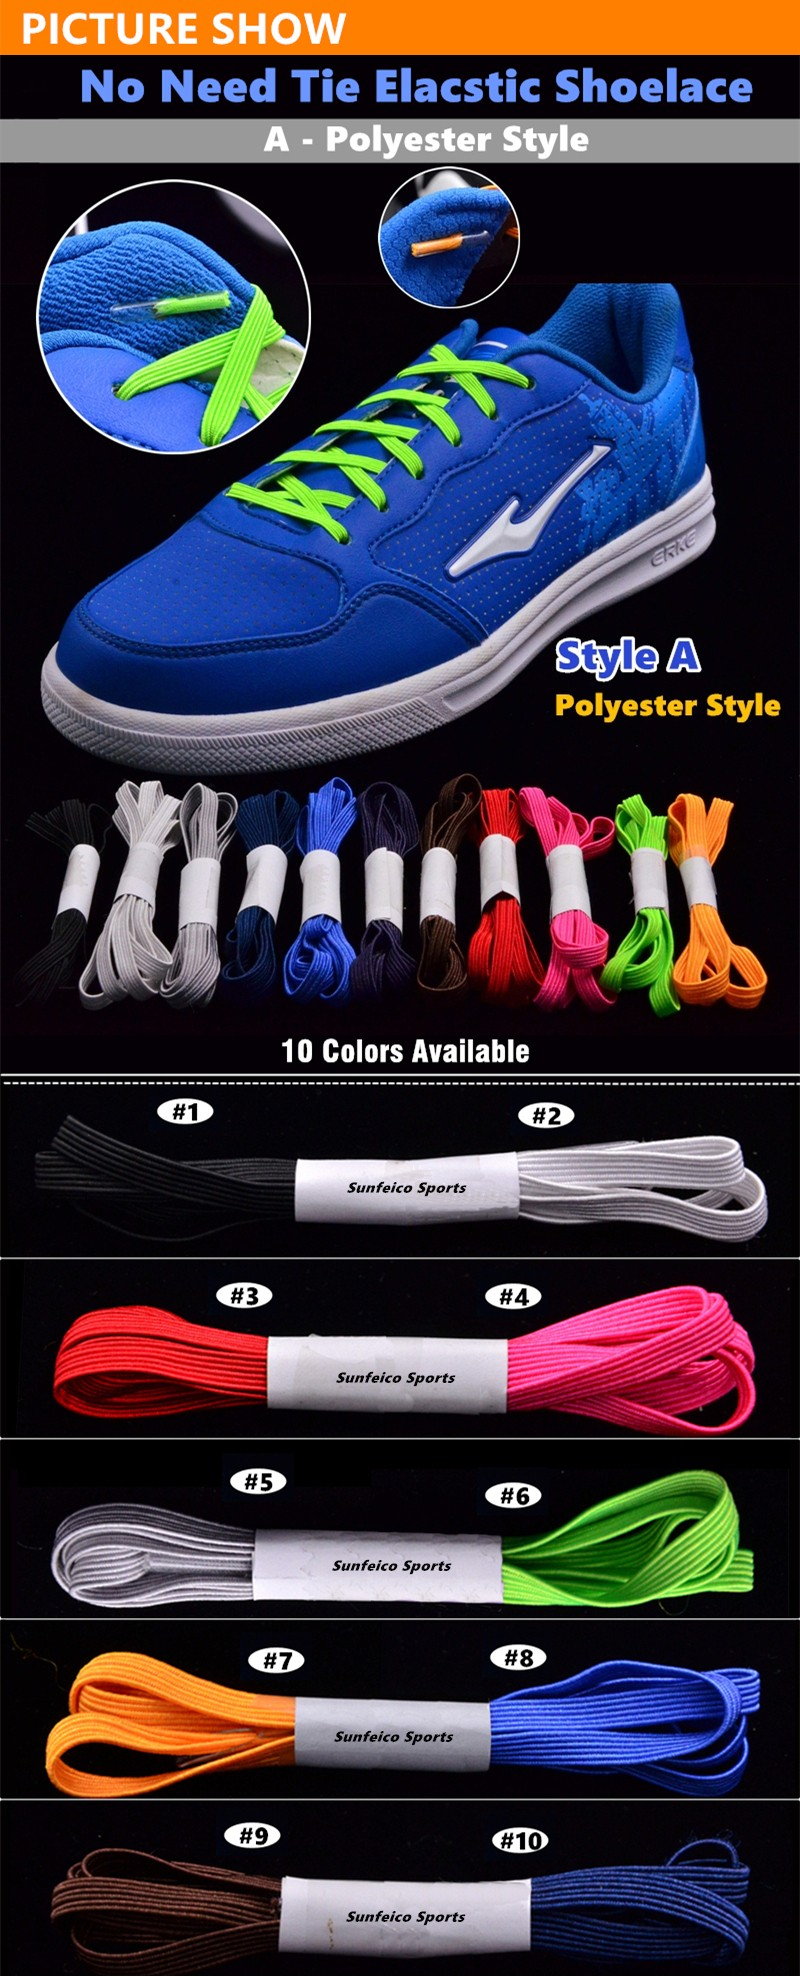 Customized Free-tie Kids Flat Elastic Shoelaces with Metal/Plastic Hooks Clips - over 11 Colors Available - eBay/Amazon Supplier